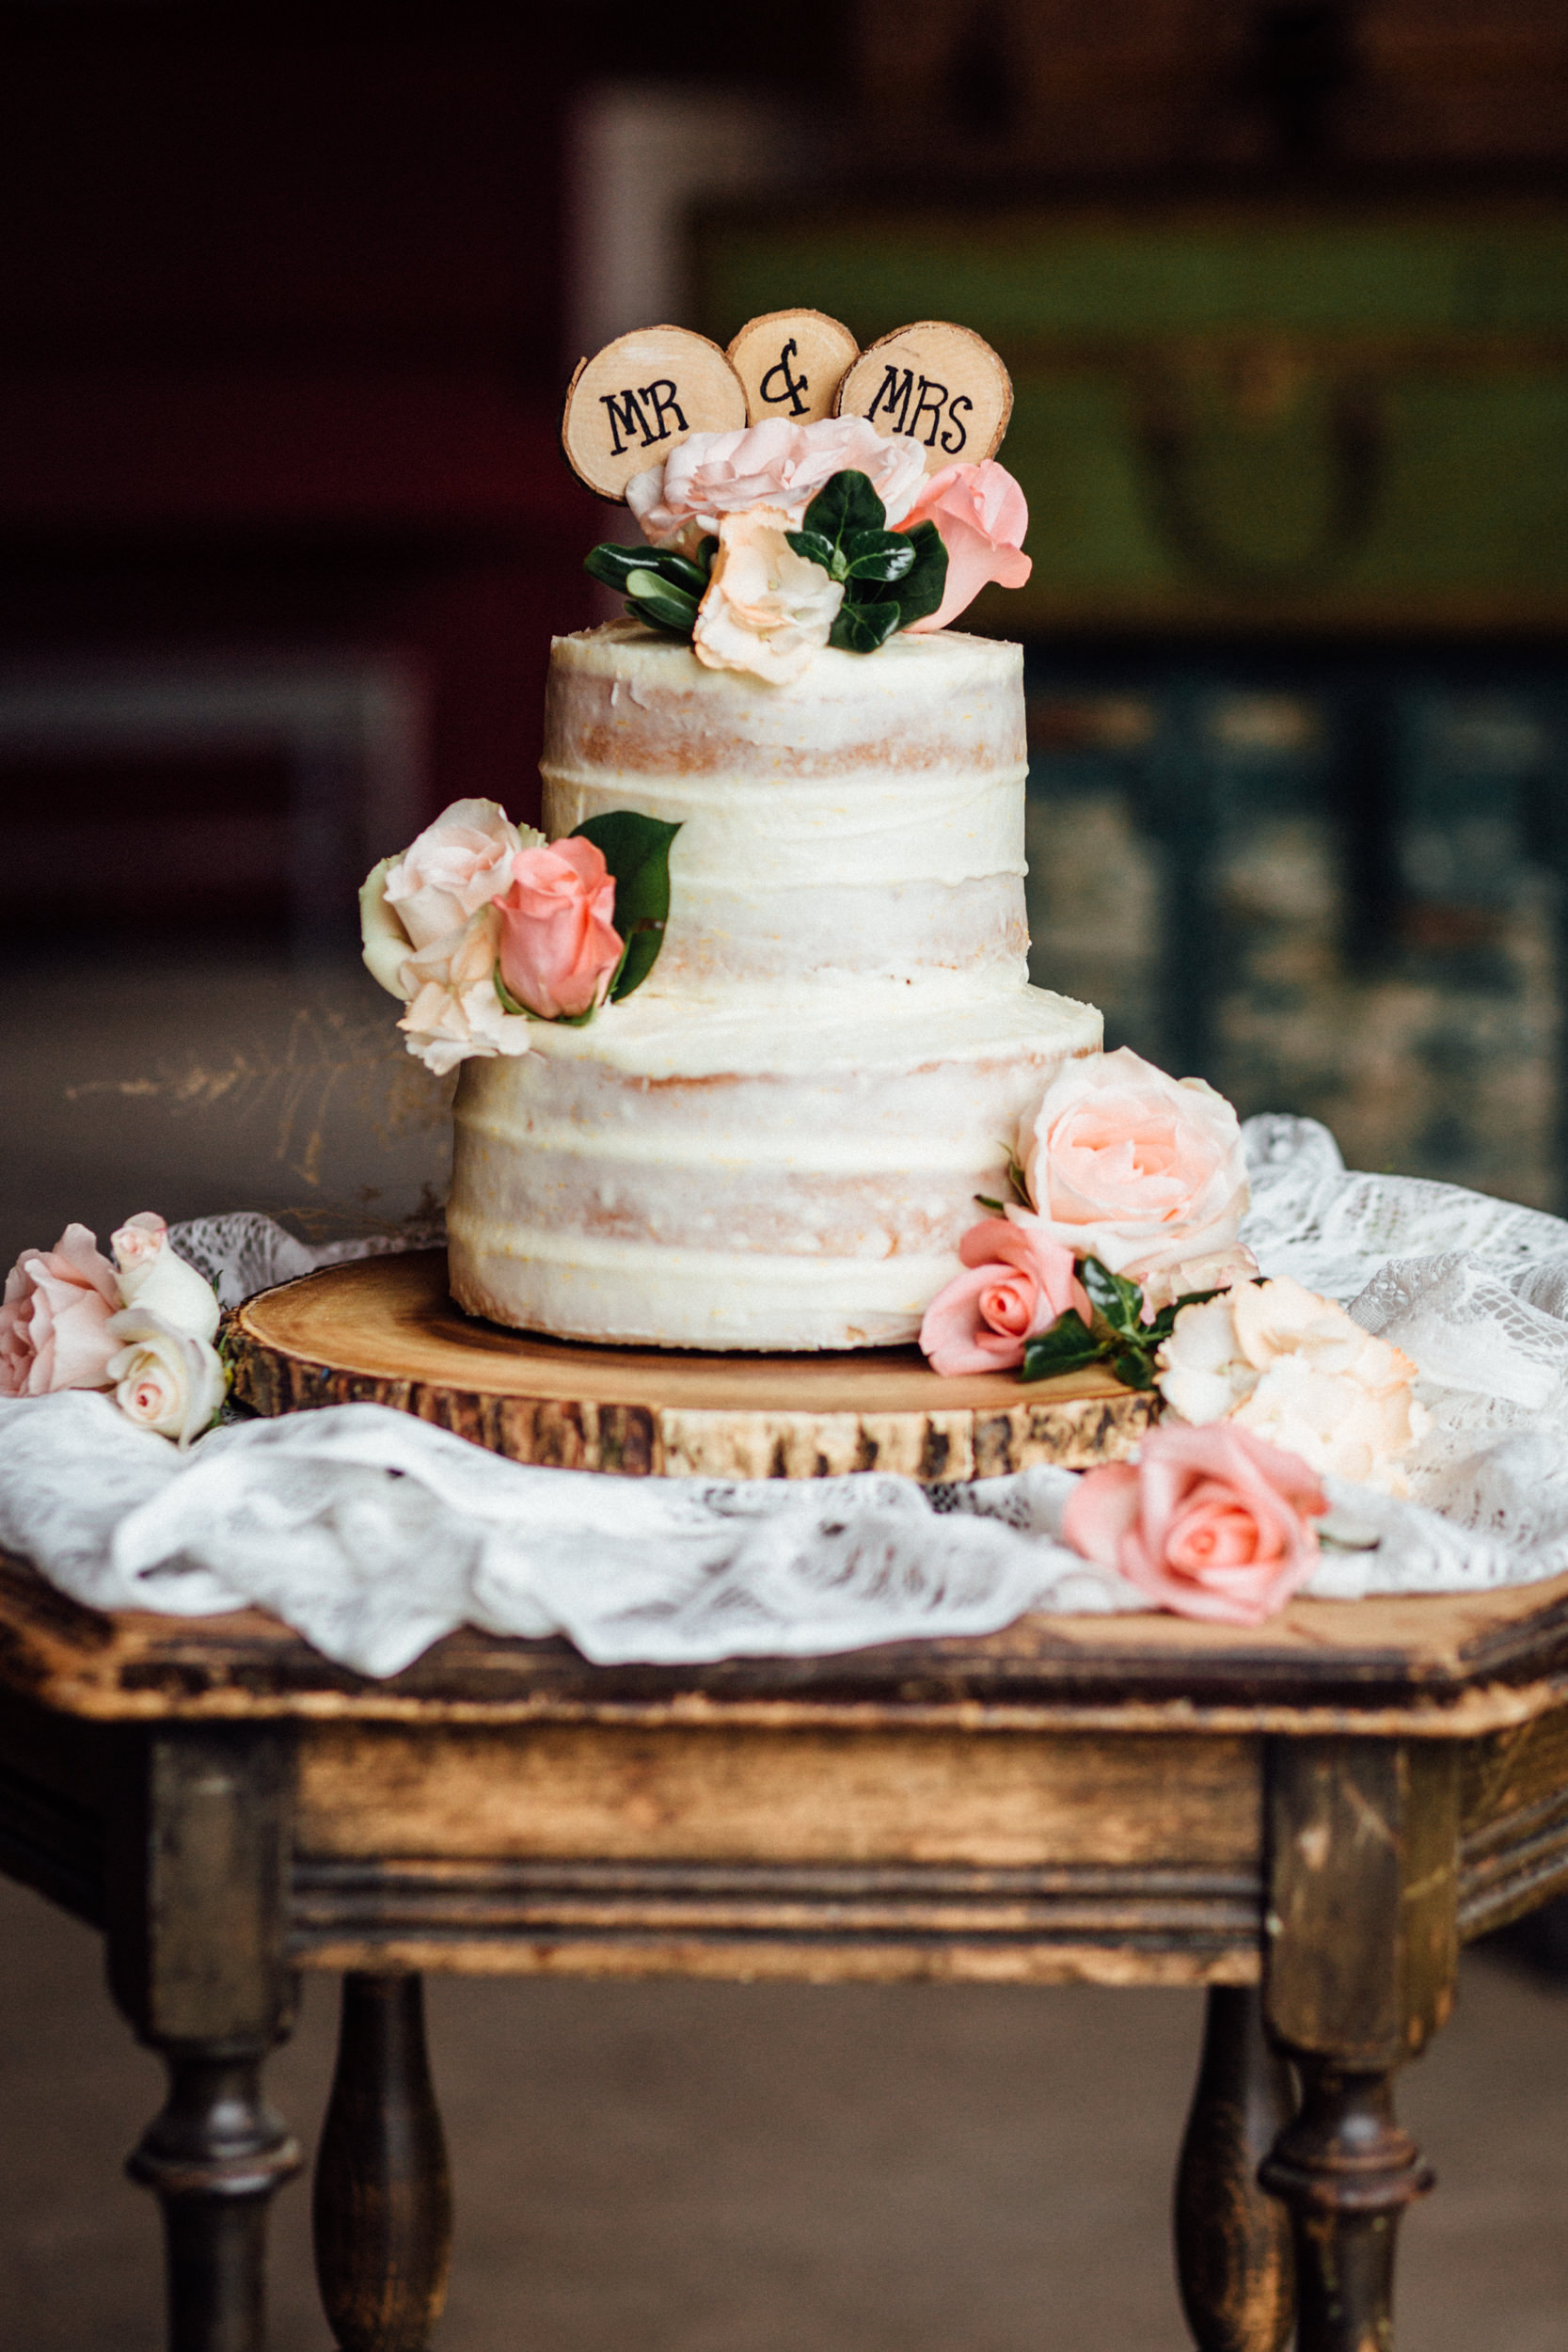 Three-layer wedding cake with pink flowers